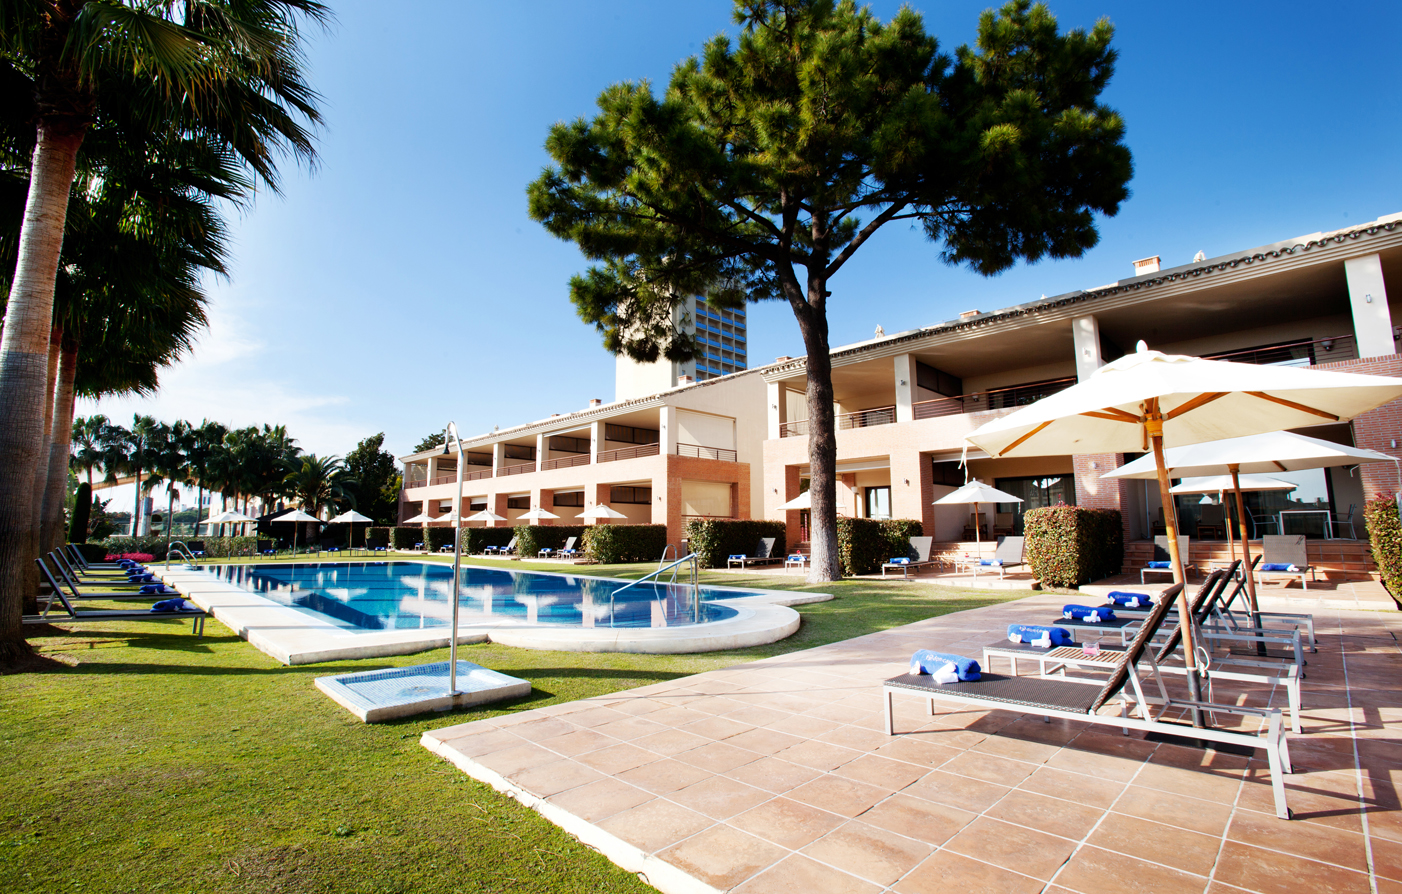 Hotel don carlos leisure resort spa luxury hotels in for Hotel spa lujo espana